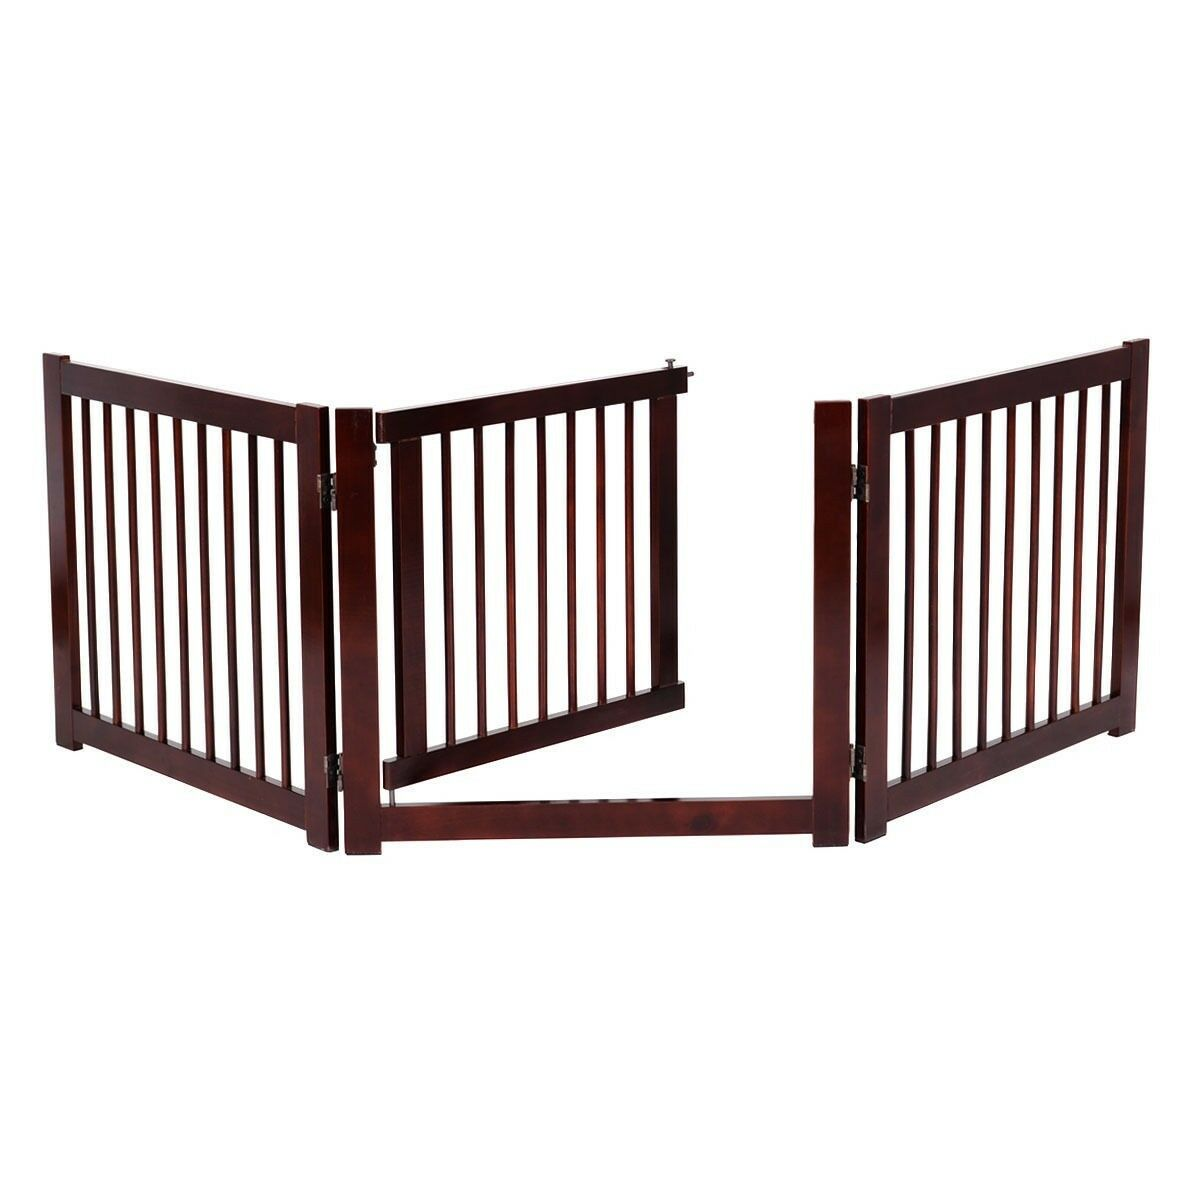 Home Indoor Separate Pet Dog Folden Baby Safety Fence Gate Expandable Doorway Us 1 Of 5only 5 Available See More